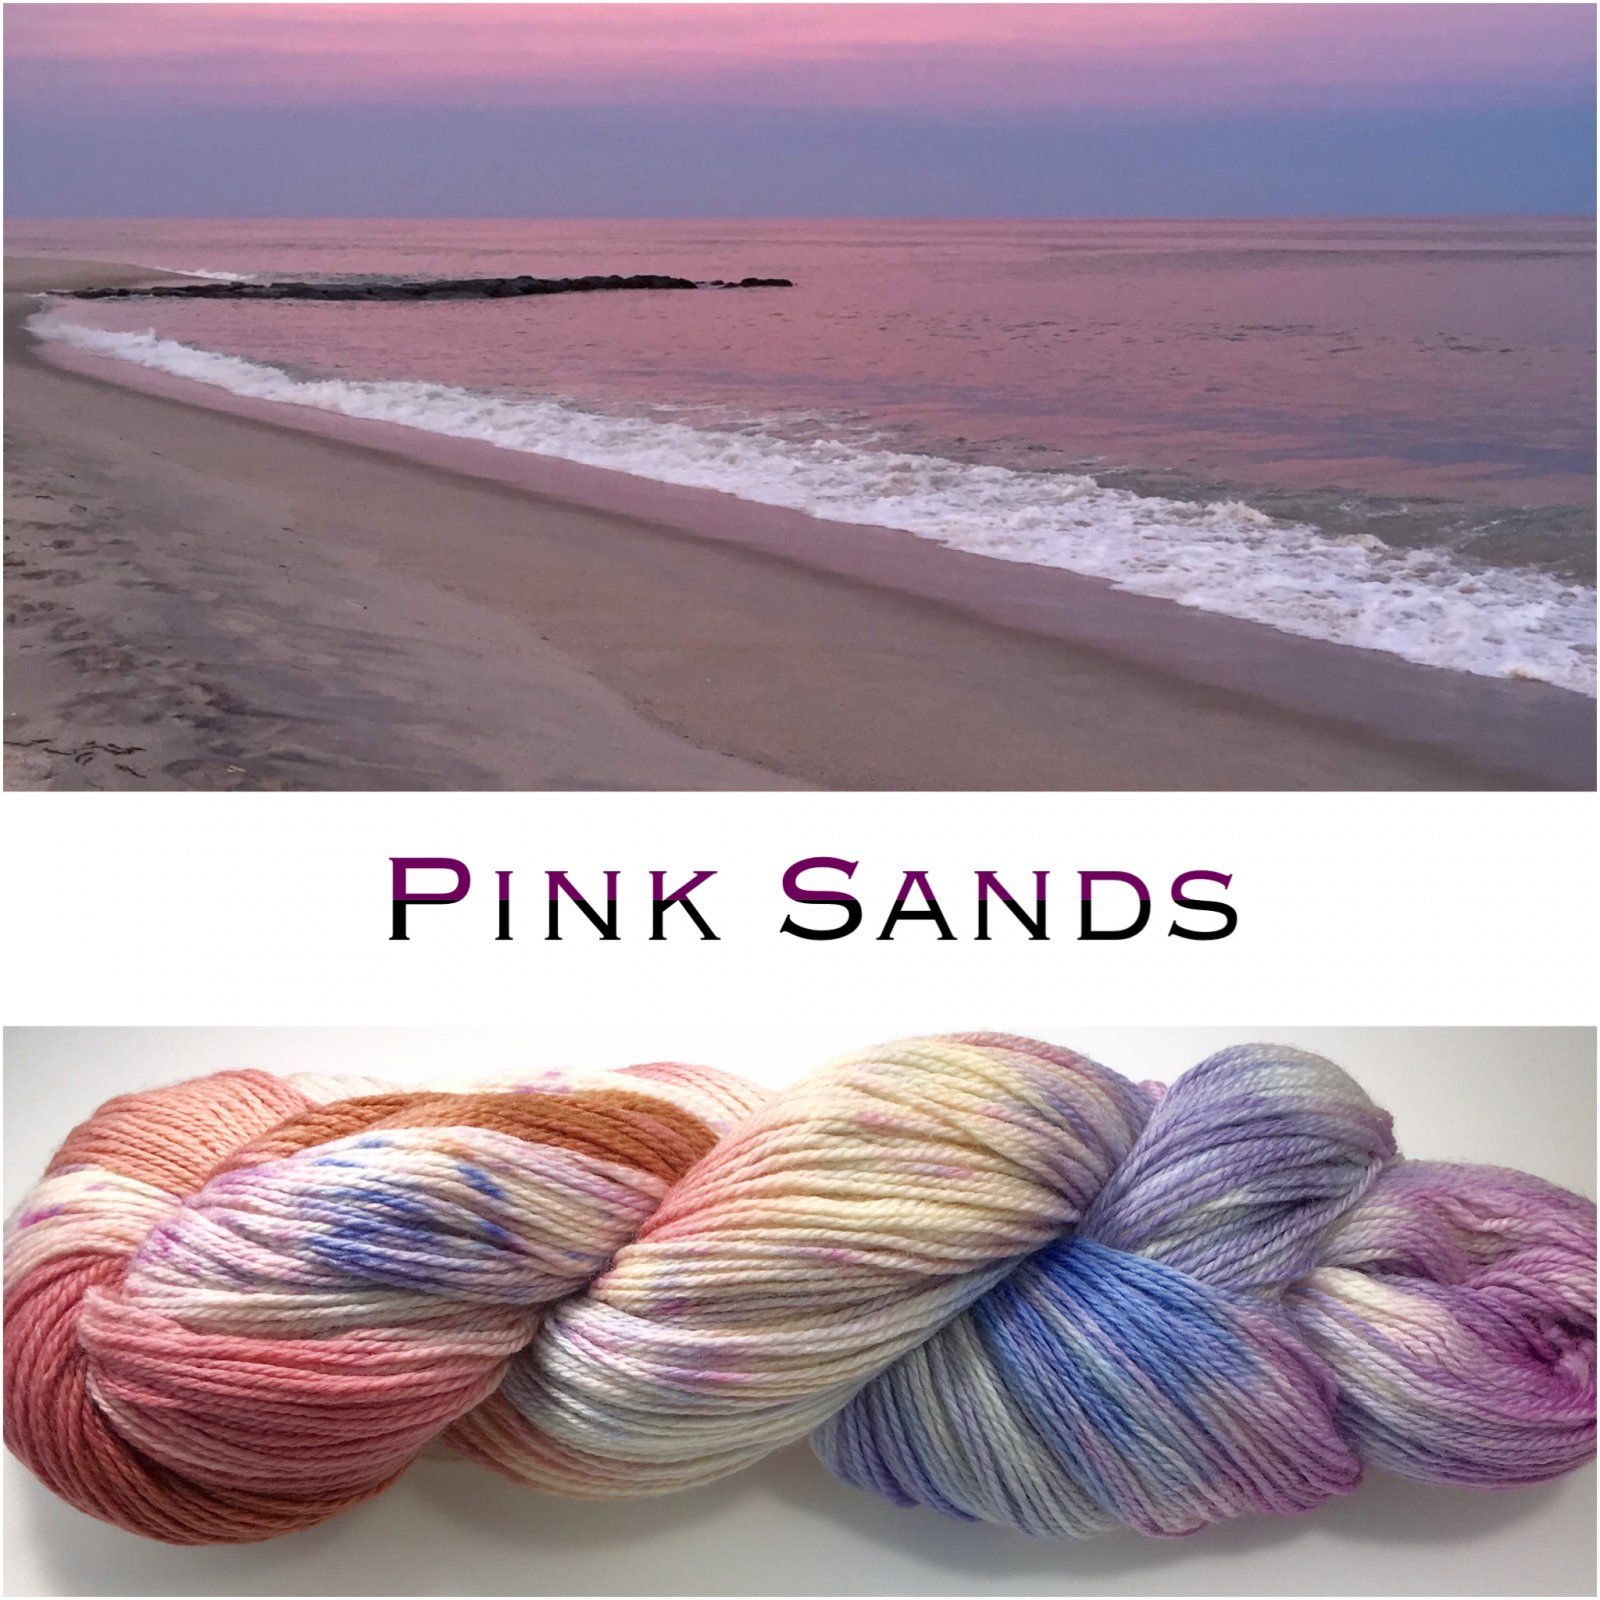 Artyarns Inspirations Club